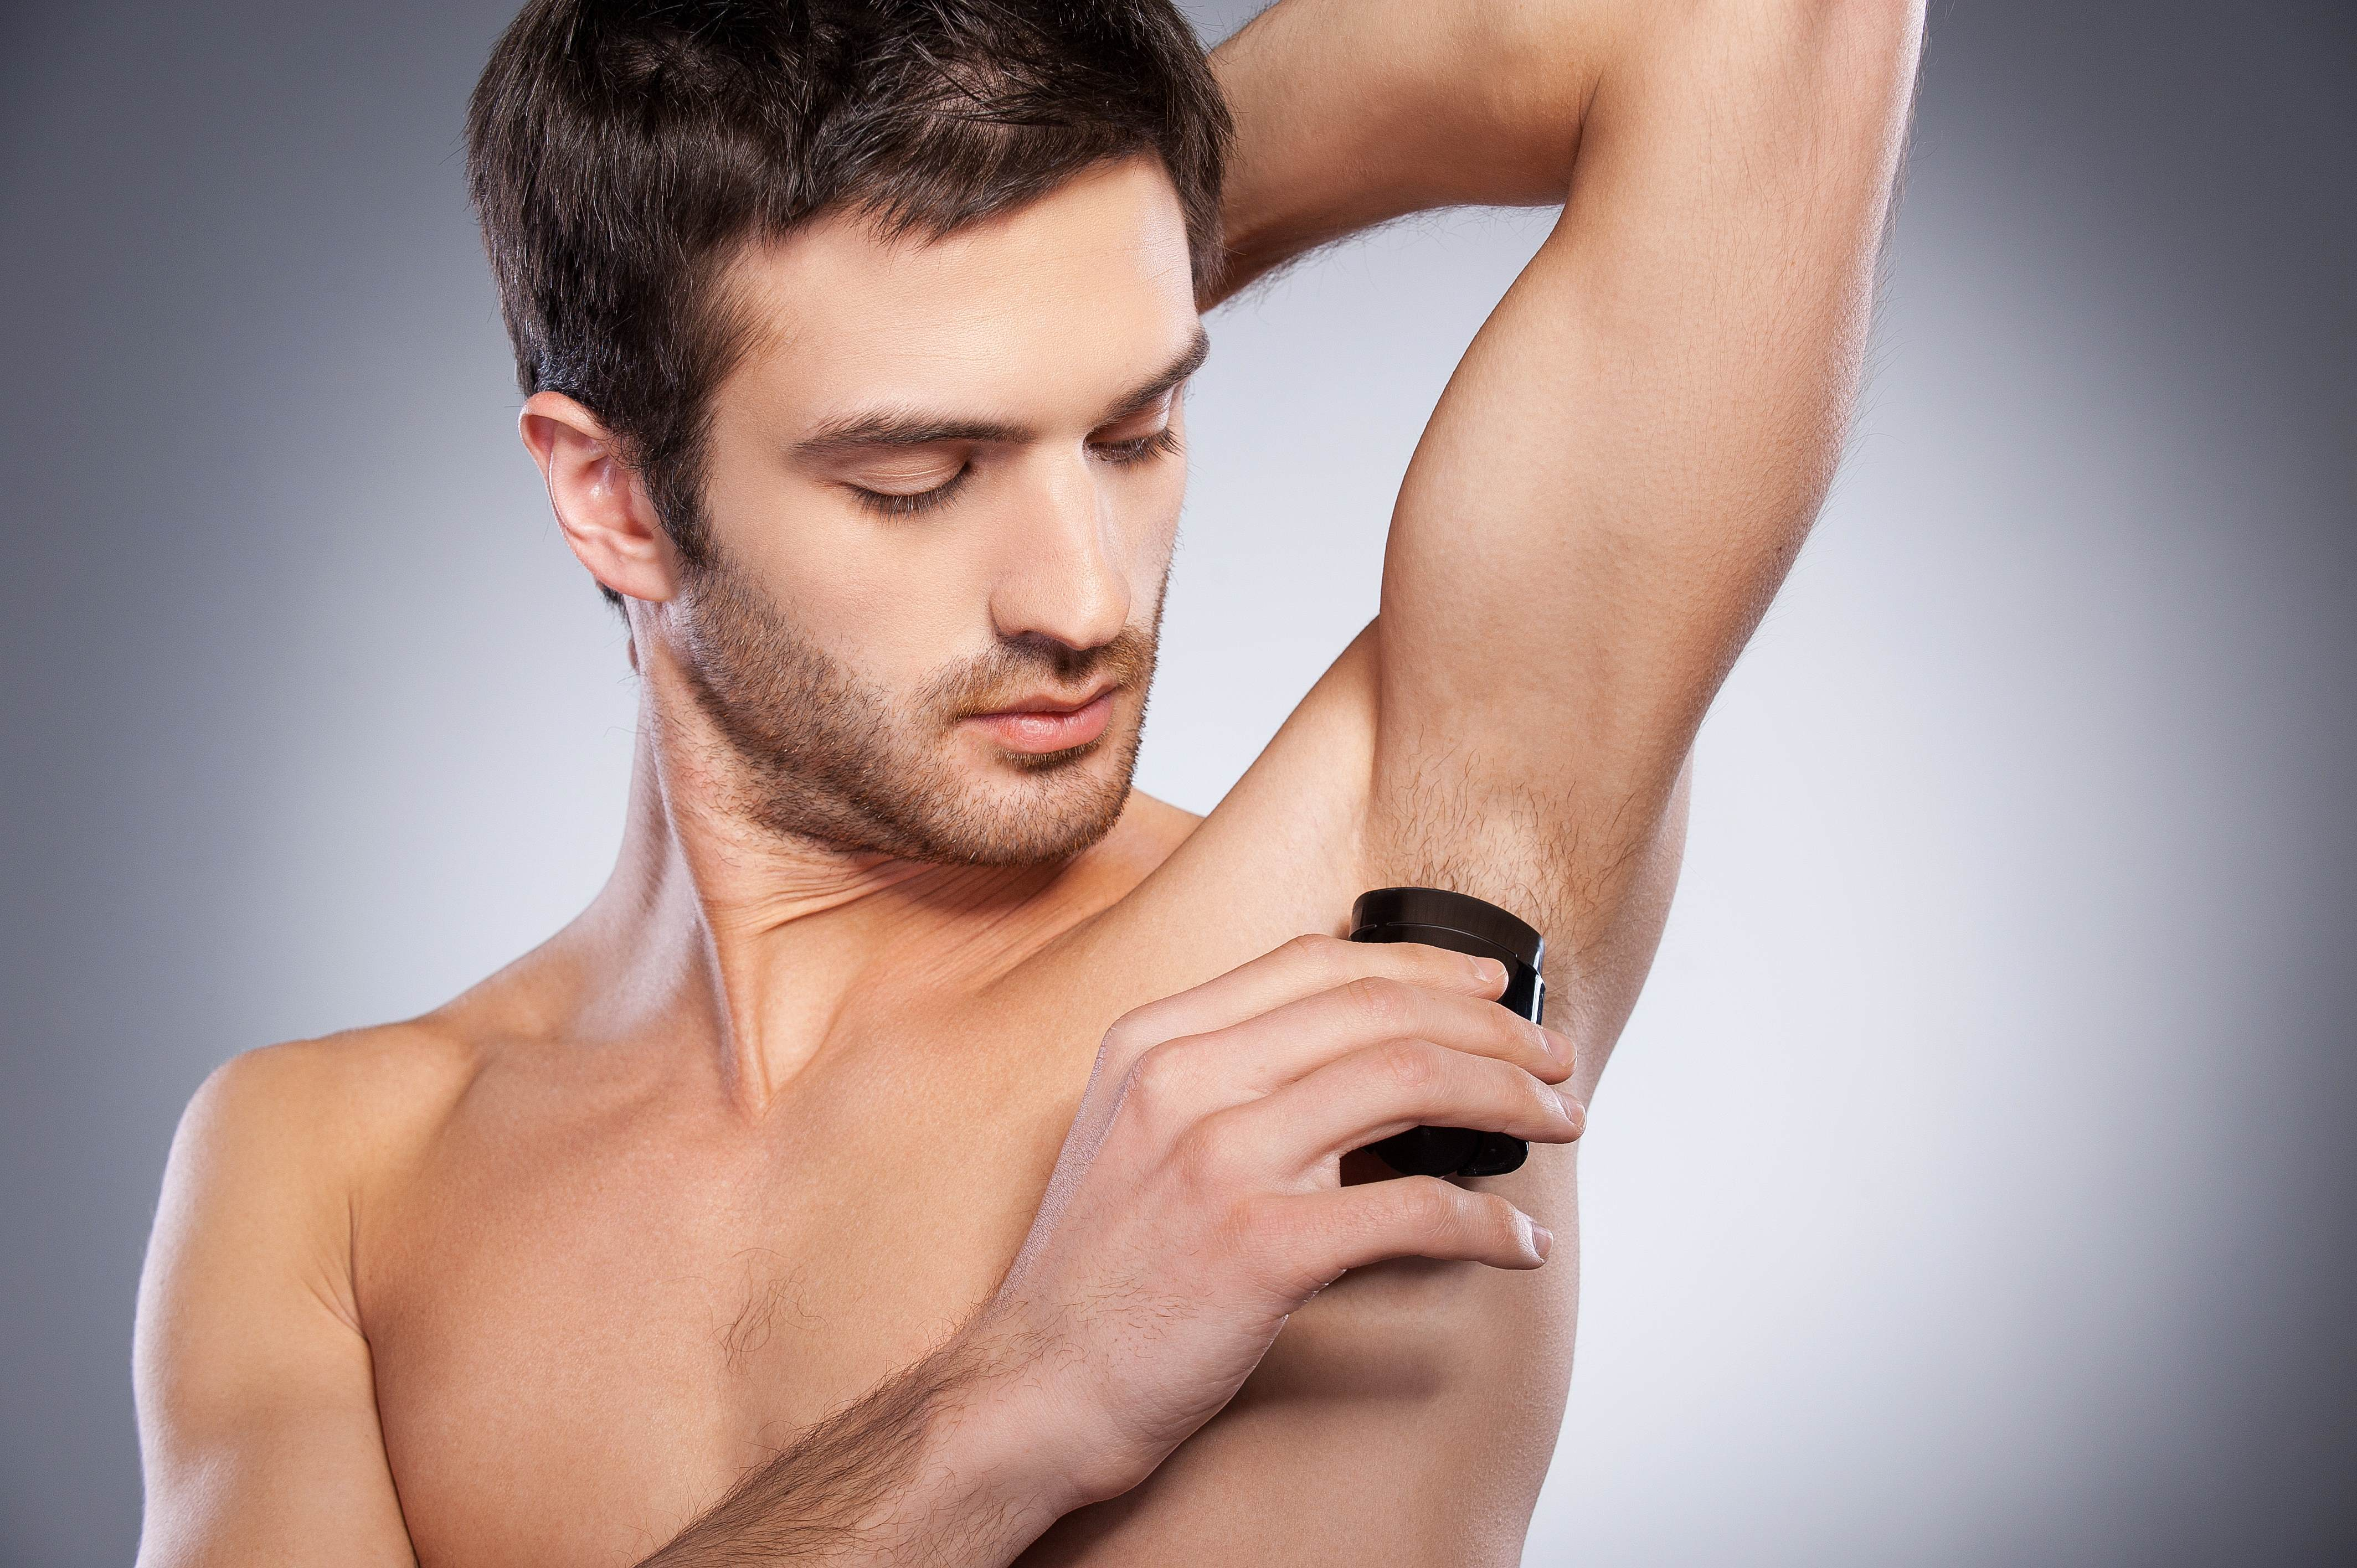 Male applying antiperspirant deodorant to his underarms showing how Croda's ingredients are effective in creating formulations in different formats including aerosol sprays, sticks, creams or roll ons